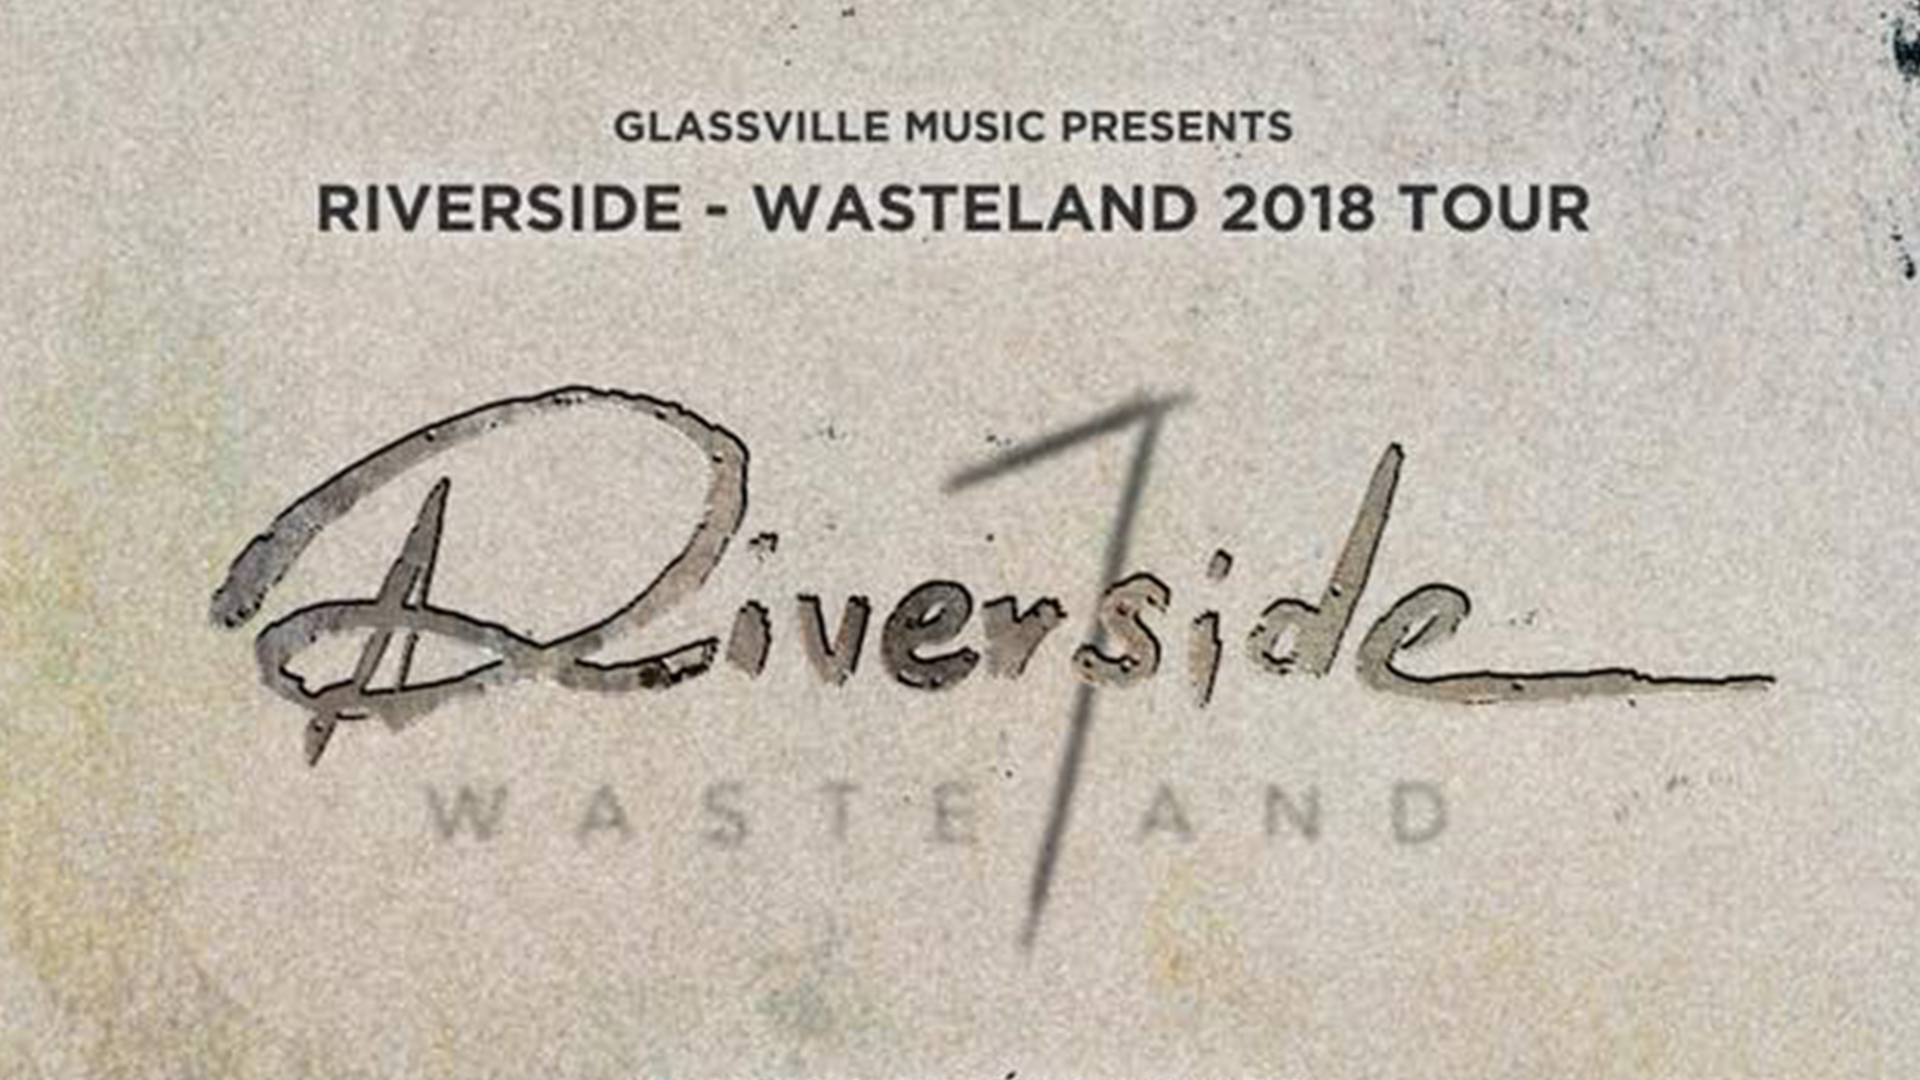 Riverside 'Waste7and TOUR 2018